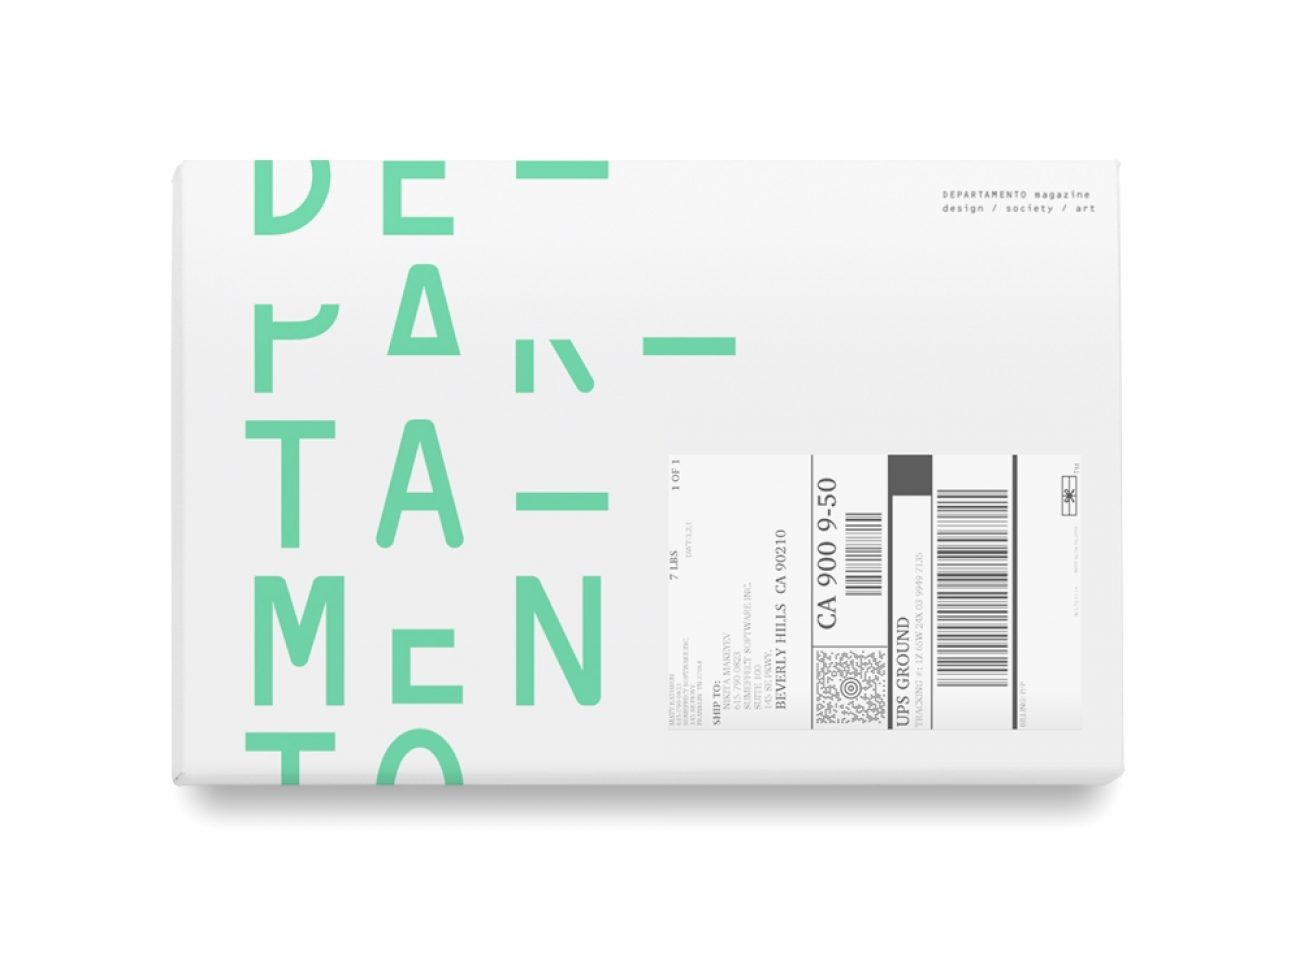 Departamento Magazine by Network Osaka 7 Headline-Worthy Book Mailer Designs